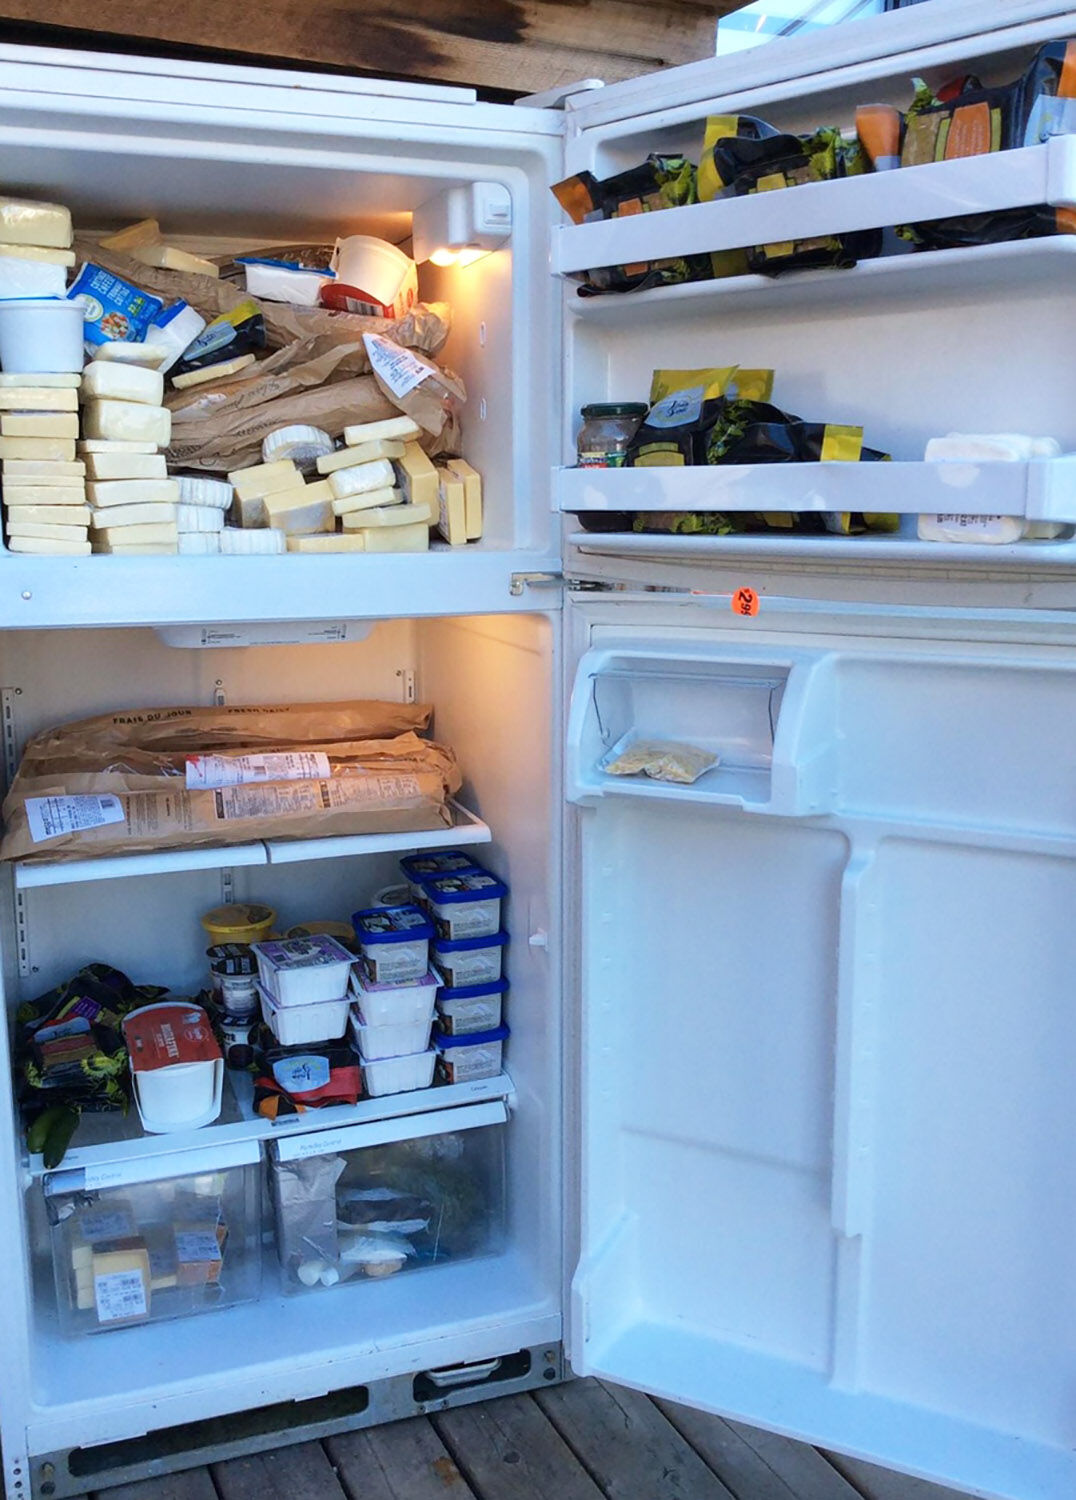 Community-owned fridge in Saint-Henri making a difference